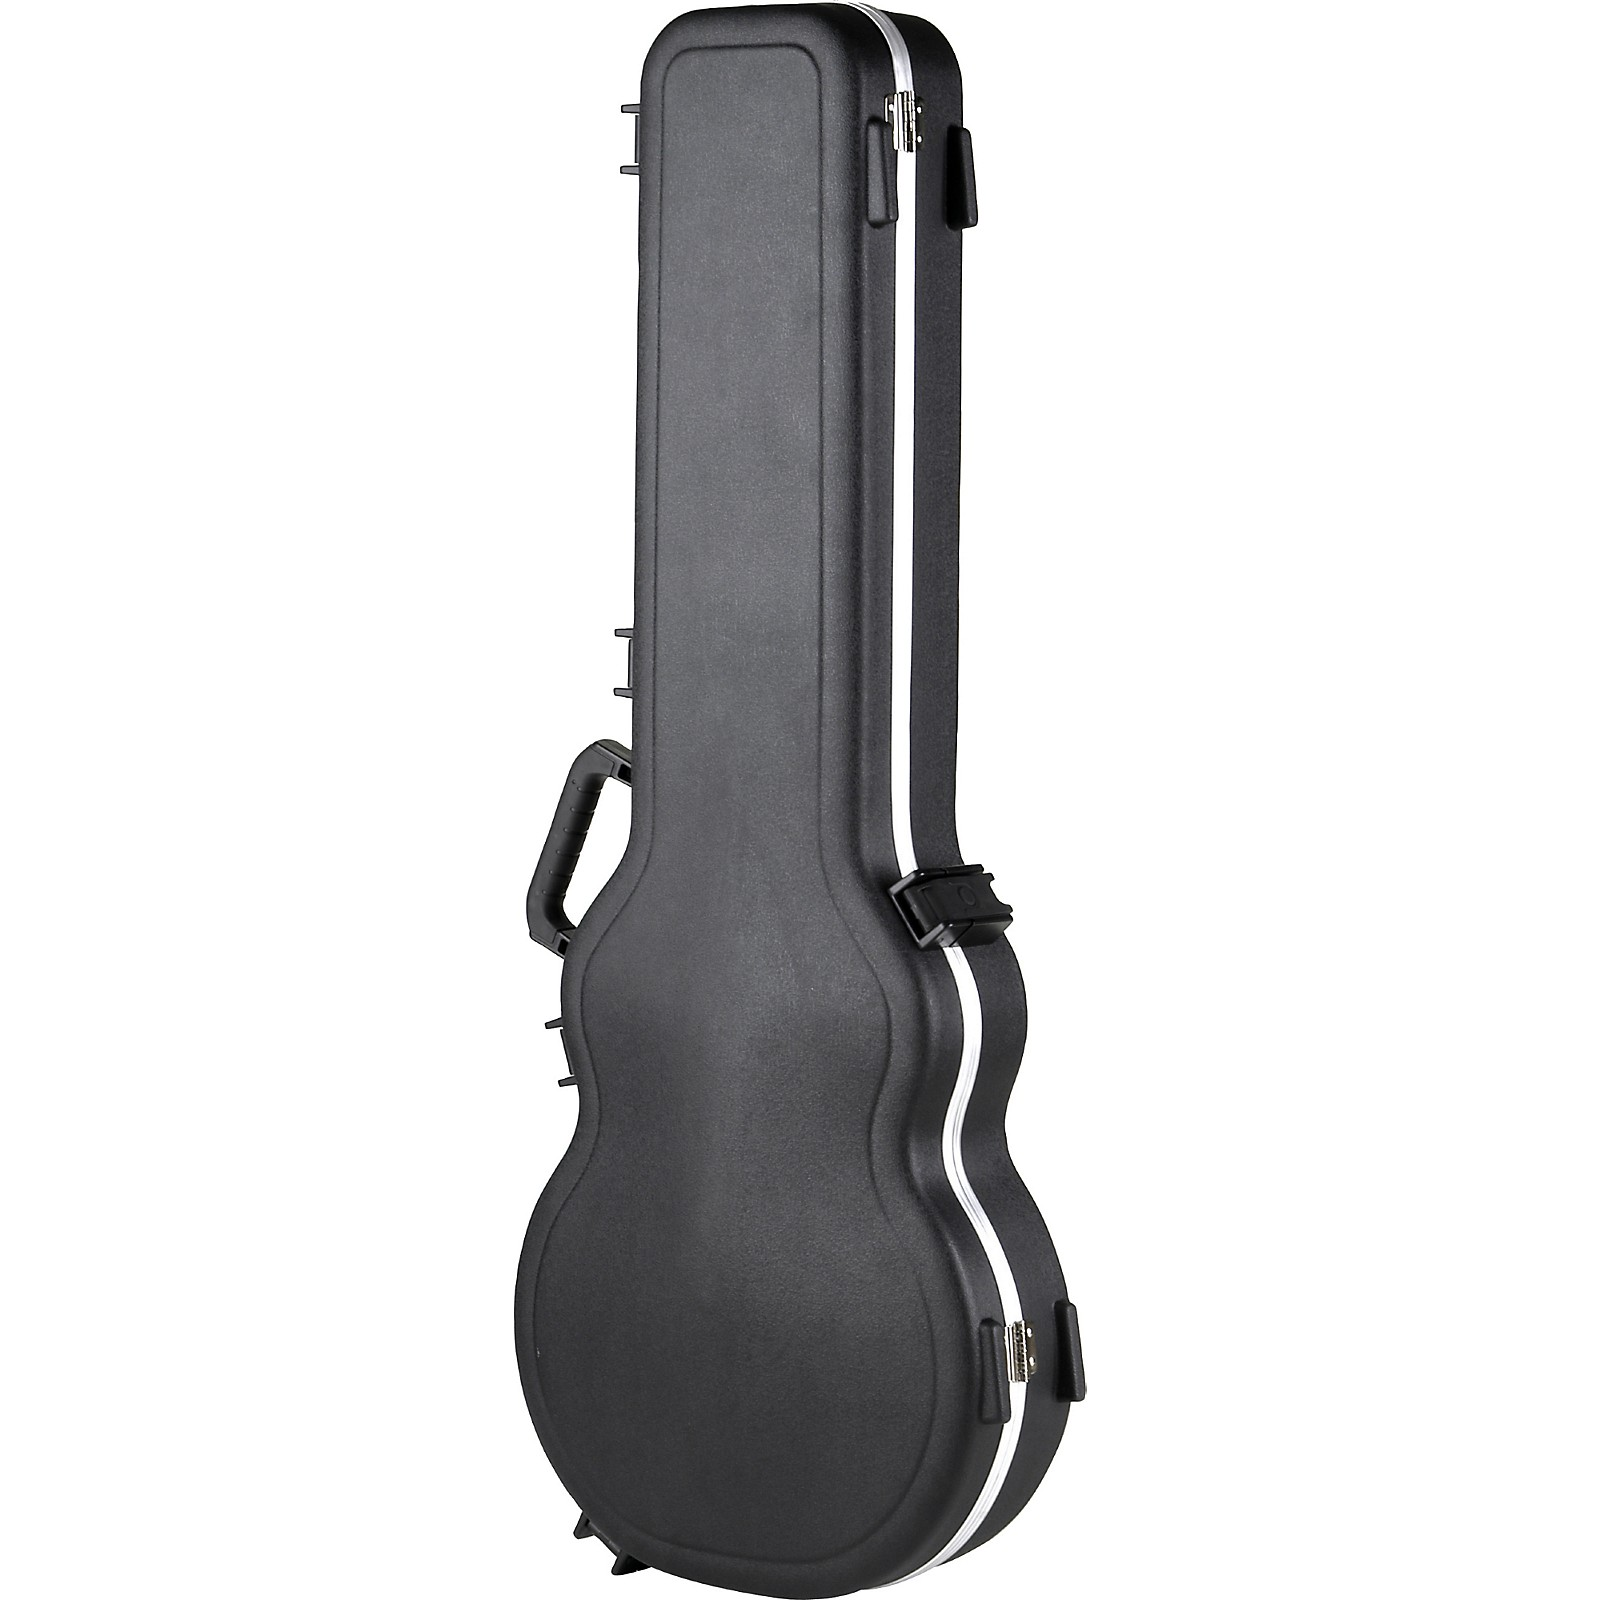 SKB SKB-56 Deluxe Single Cutaway Electric Guitar Case